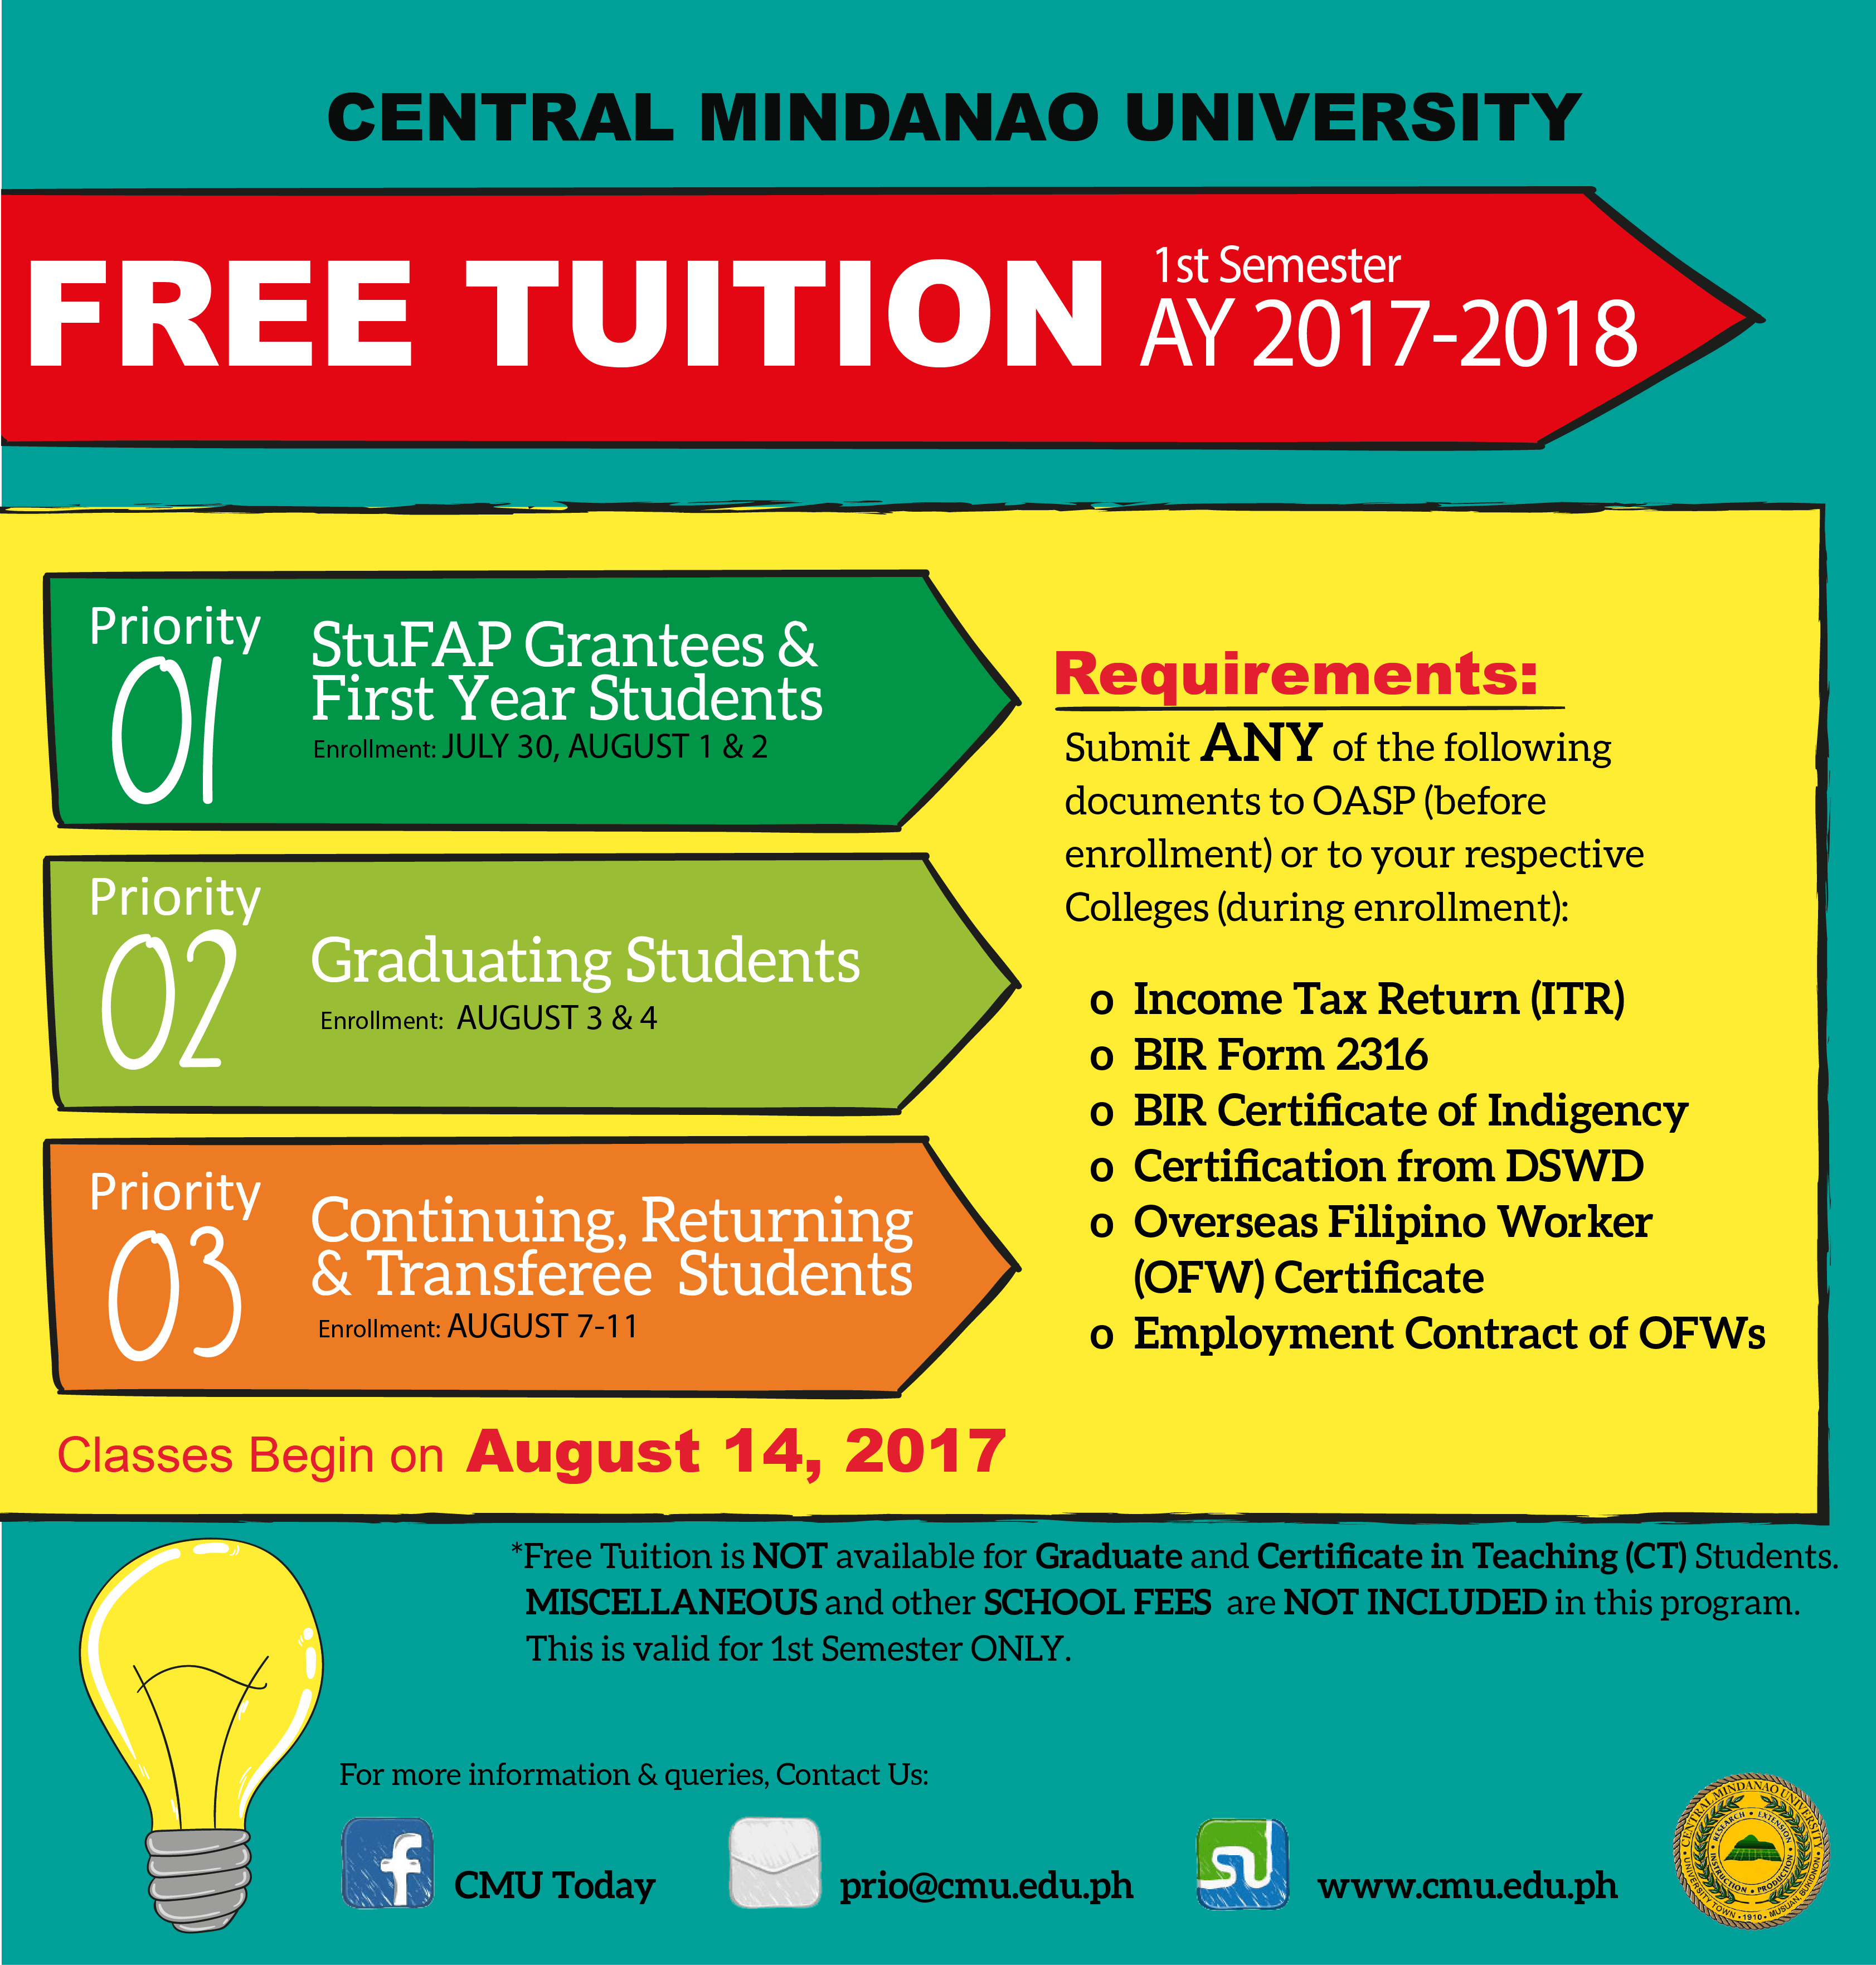 FREE TUITION GUIDELINES | Central Mindanao University